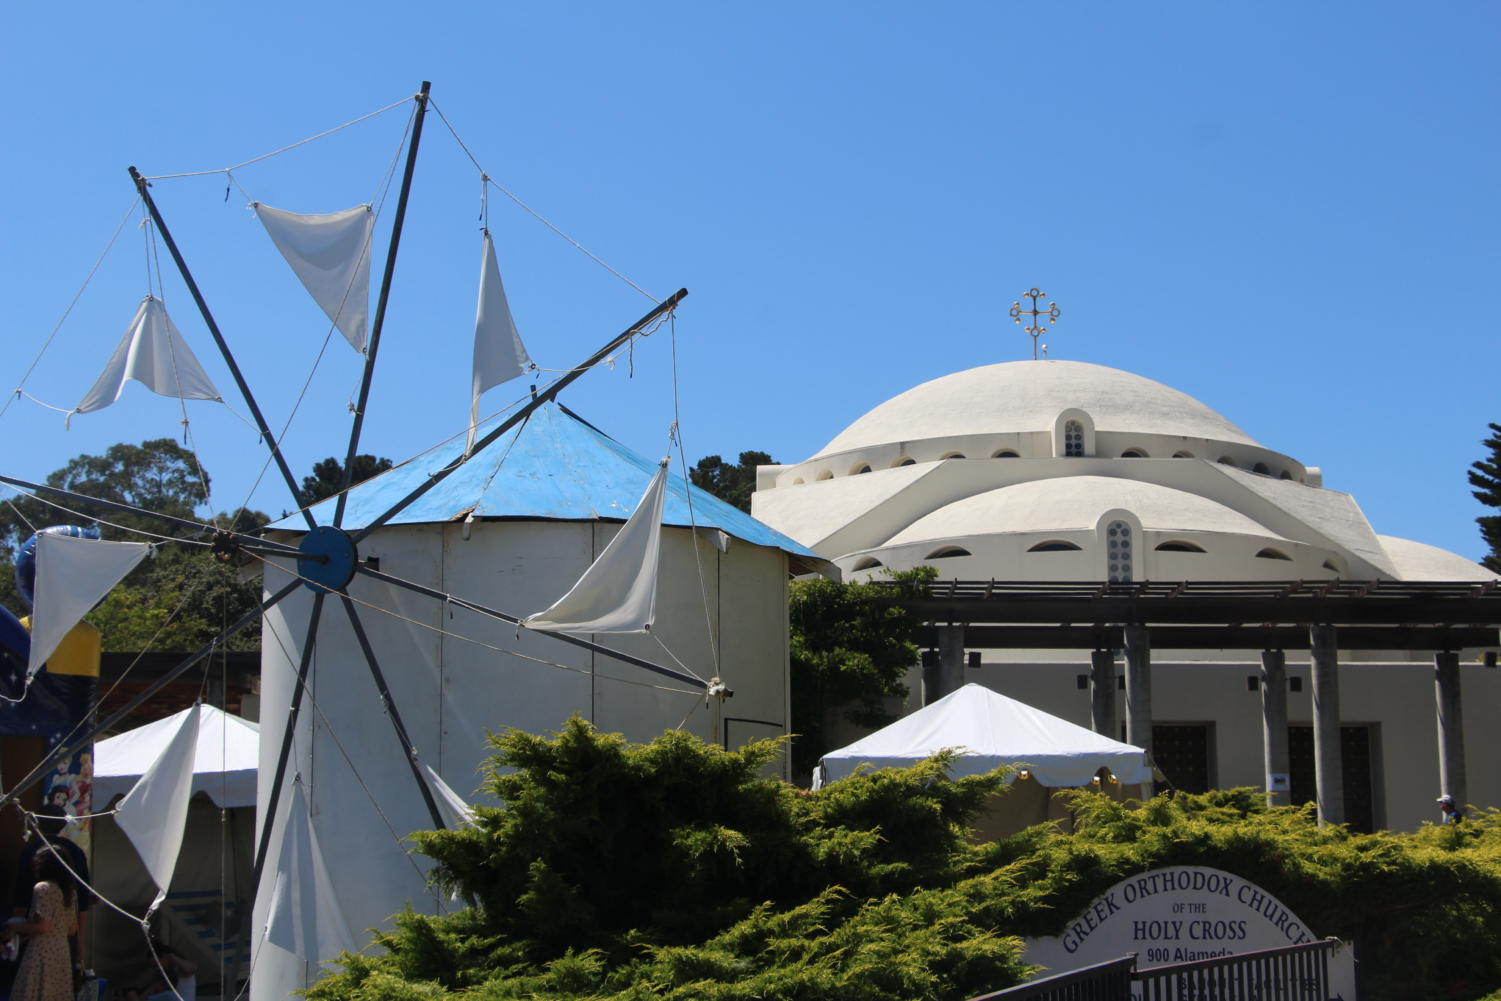 The+Greek+Orthodox+Church+of+the+Holy+Cross+hosts+the+Greek+Festival.